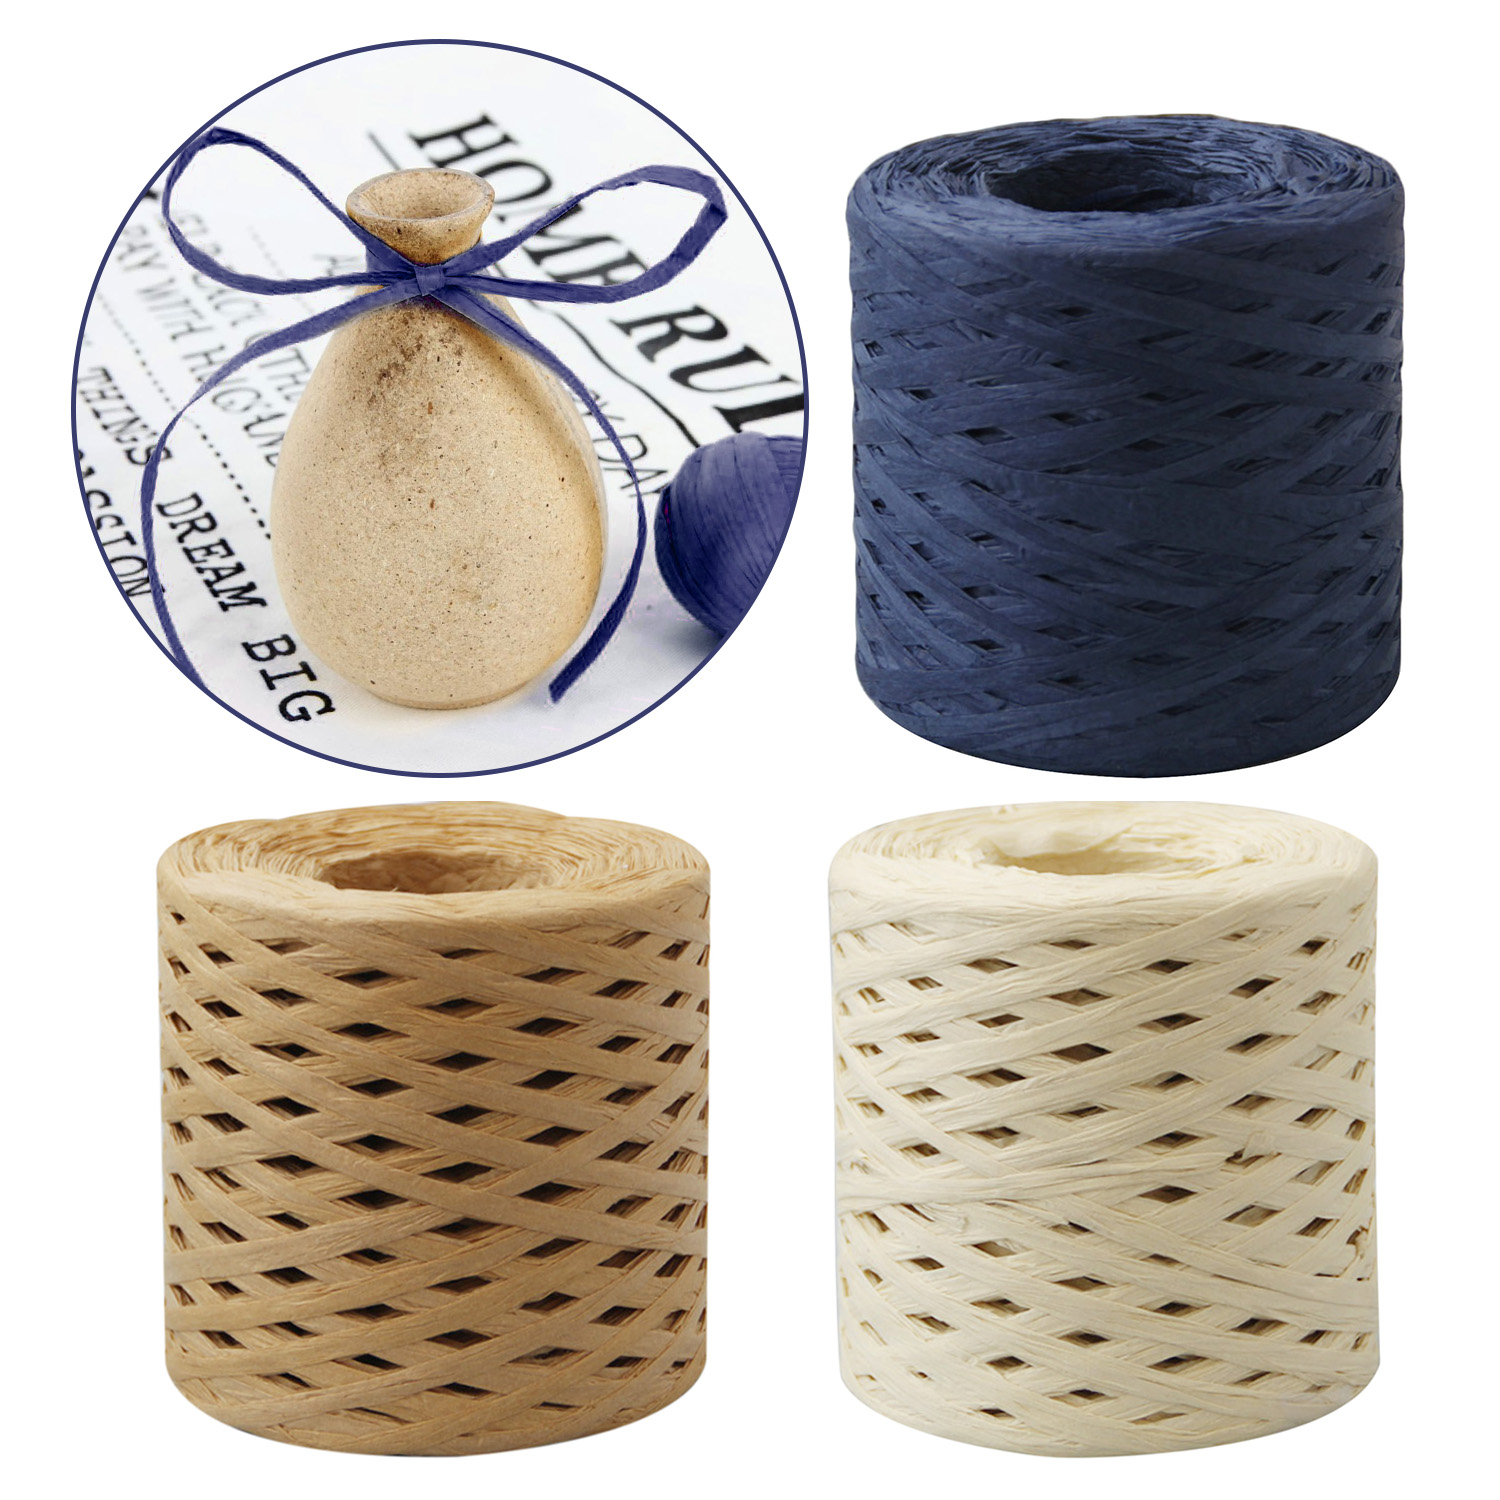 Behogar 1 Roll 200M Raffia Paper Ribbons Packing Twine Rope For Christmas Gift Box Wrapping Package DIY Crafts Party Decorations